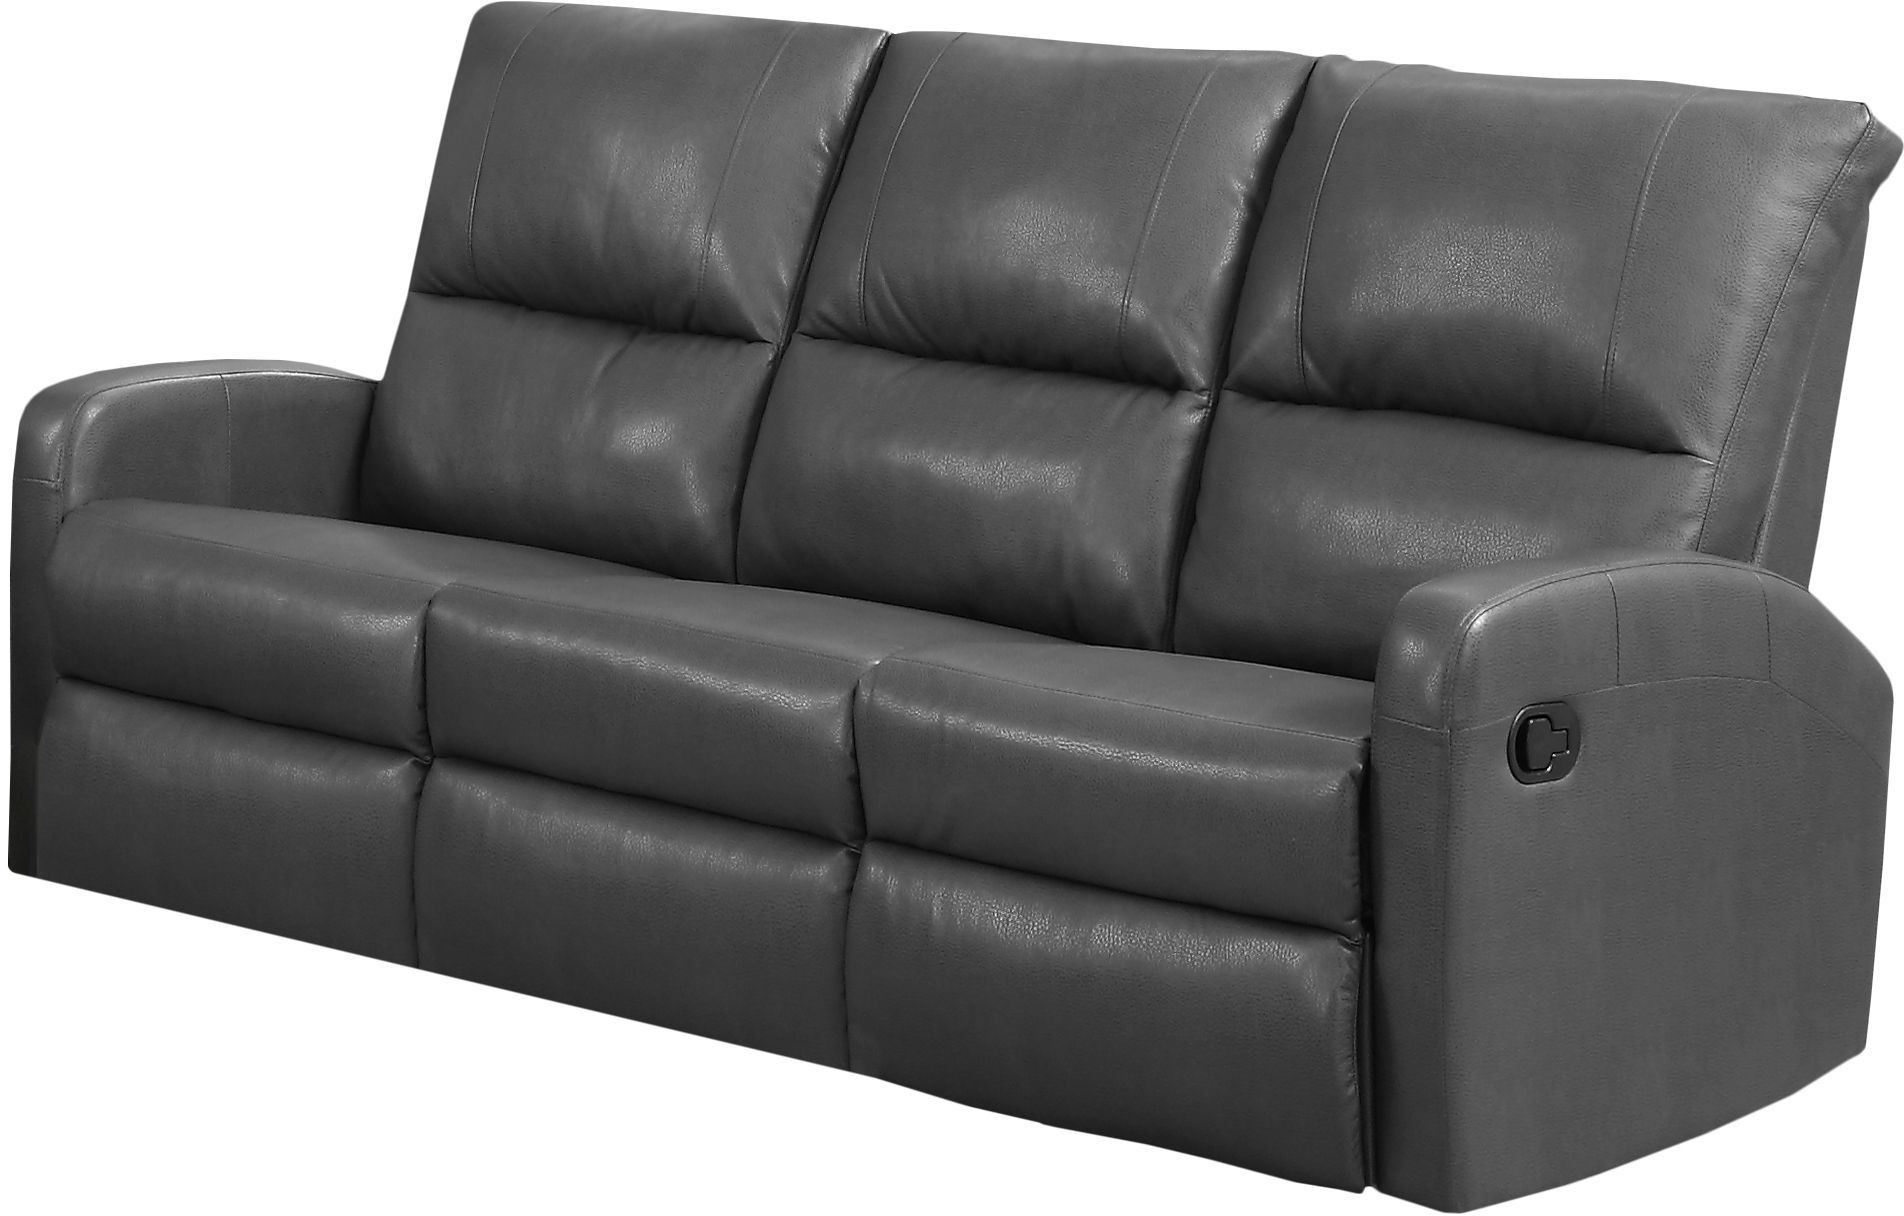 black leather office sofa comfort in cologne sensational sofa and seating trends le. Black Bedroom Furniture Sets. Home Design Ideas